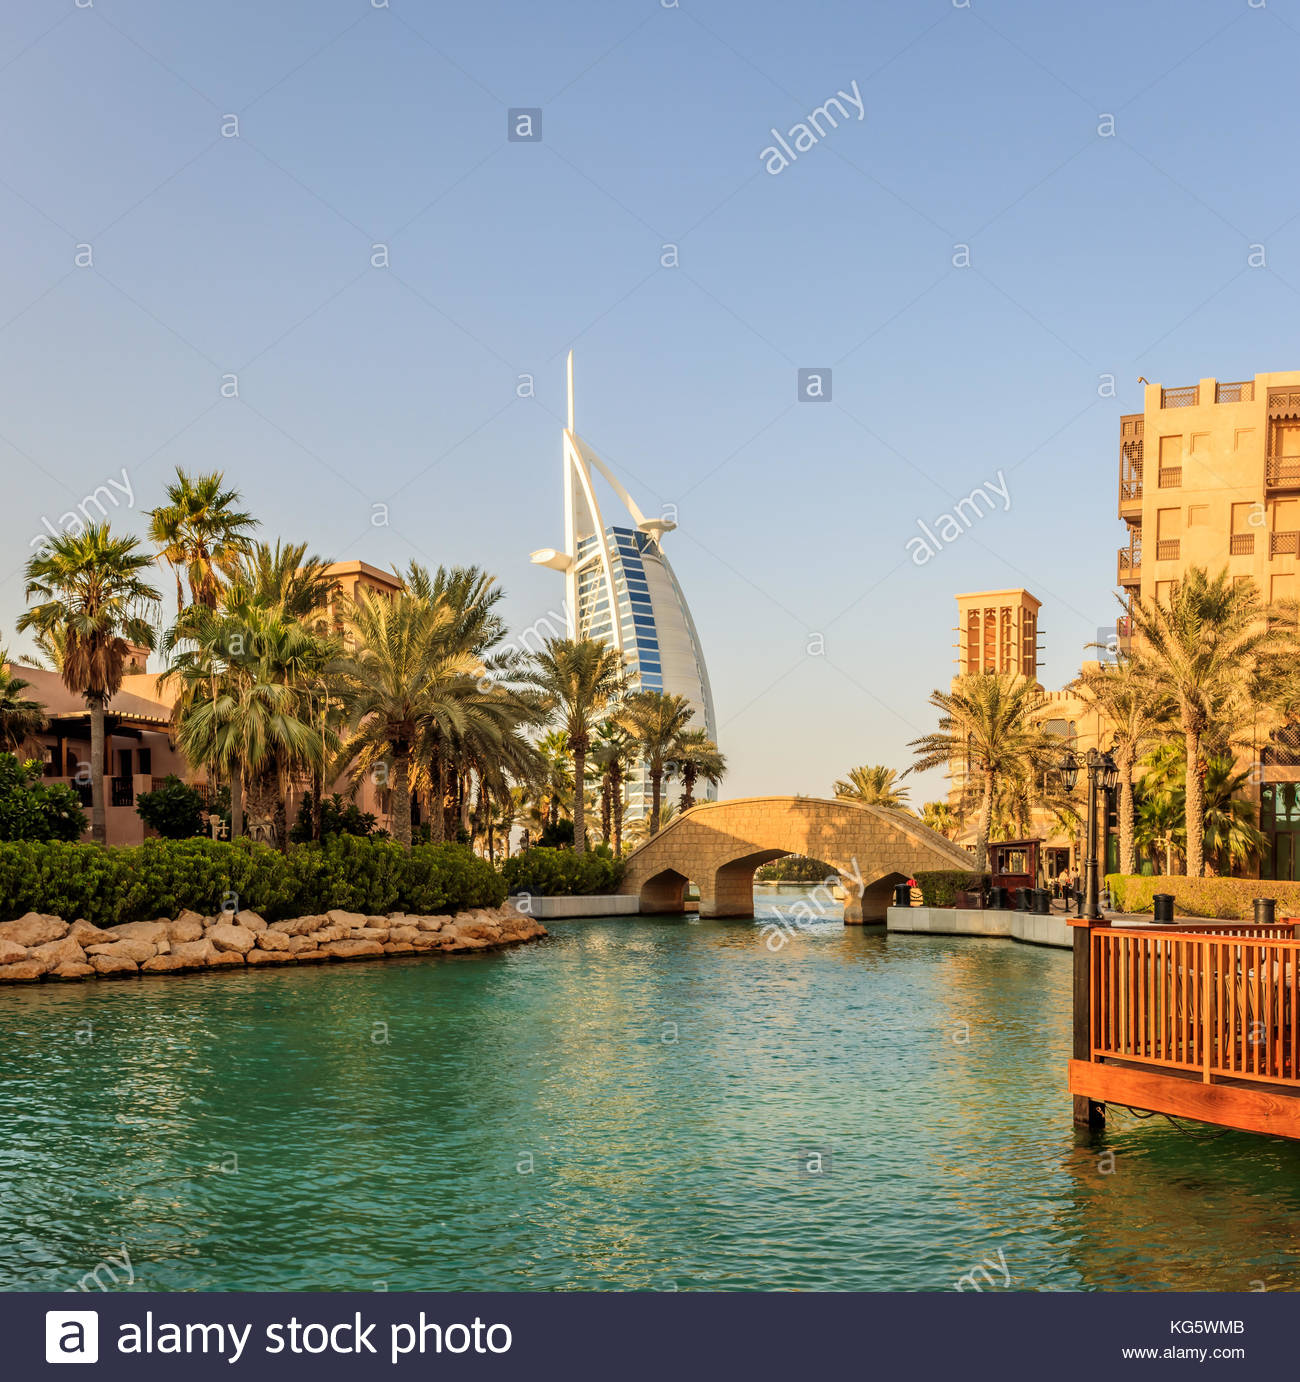 A view of Madinat Jumeirah and the famous Burj Al Arab luxurious hotel in Dubai. - Stock Image